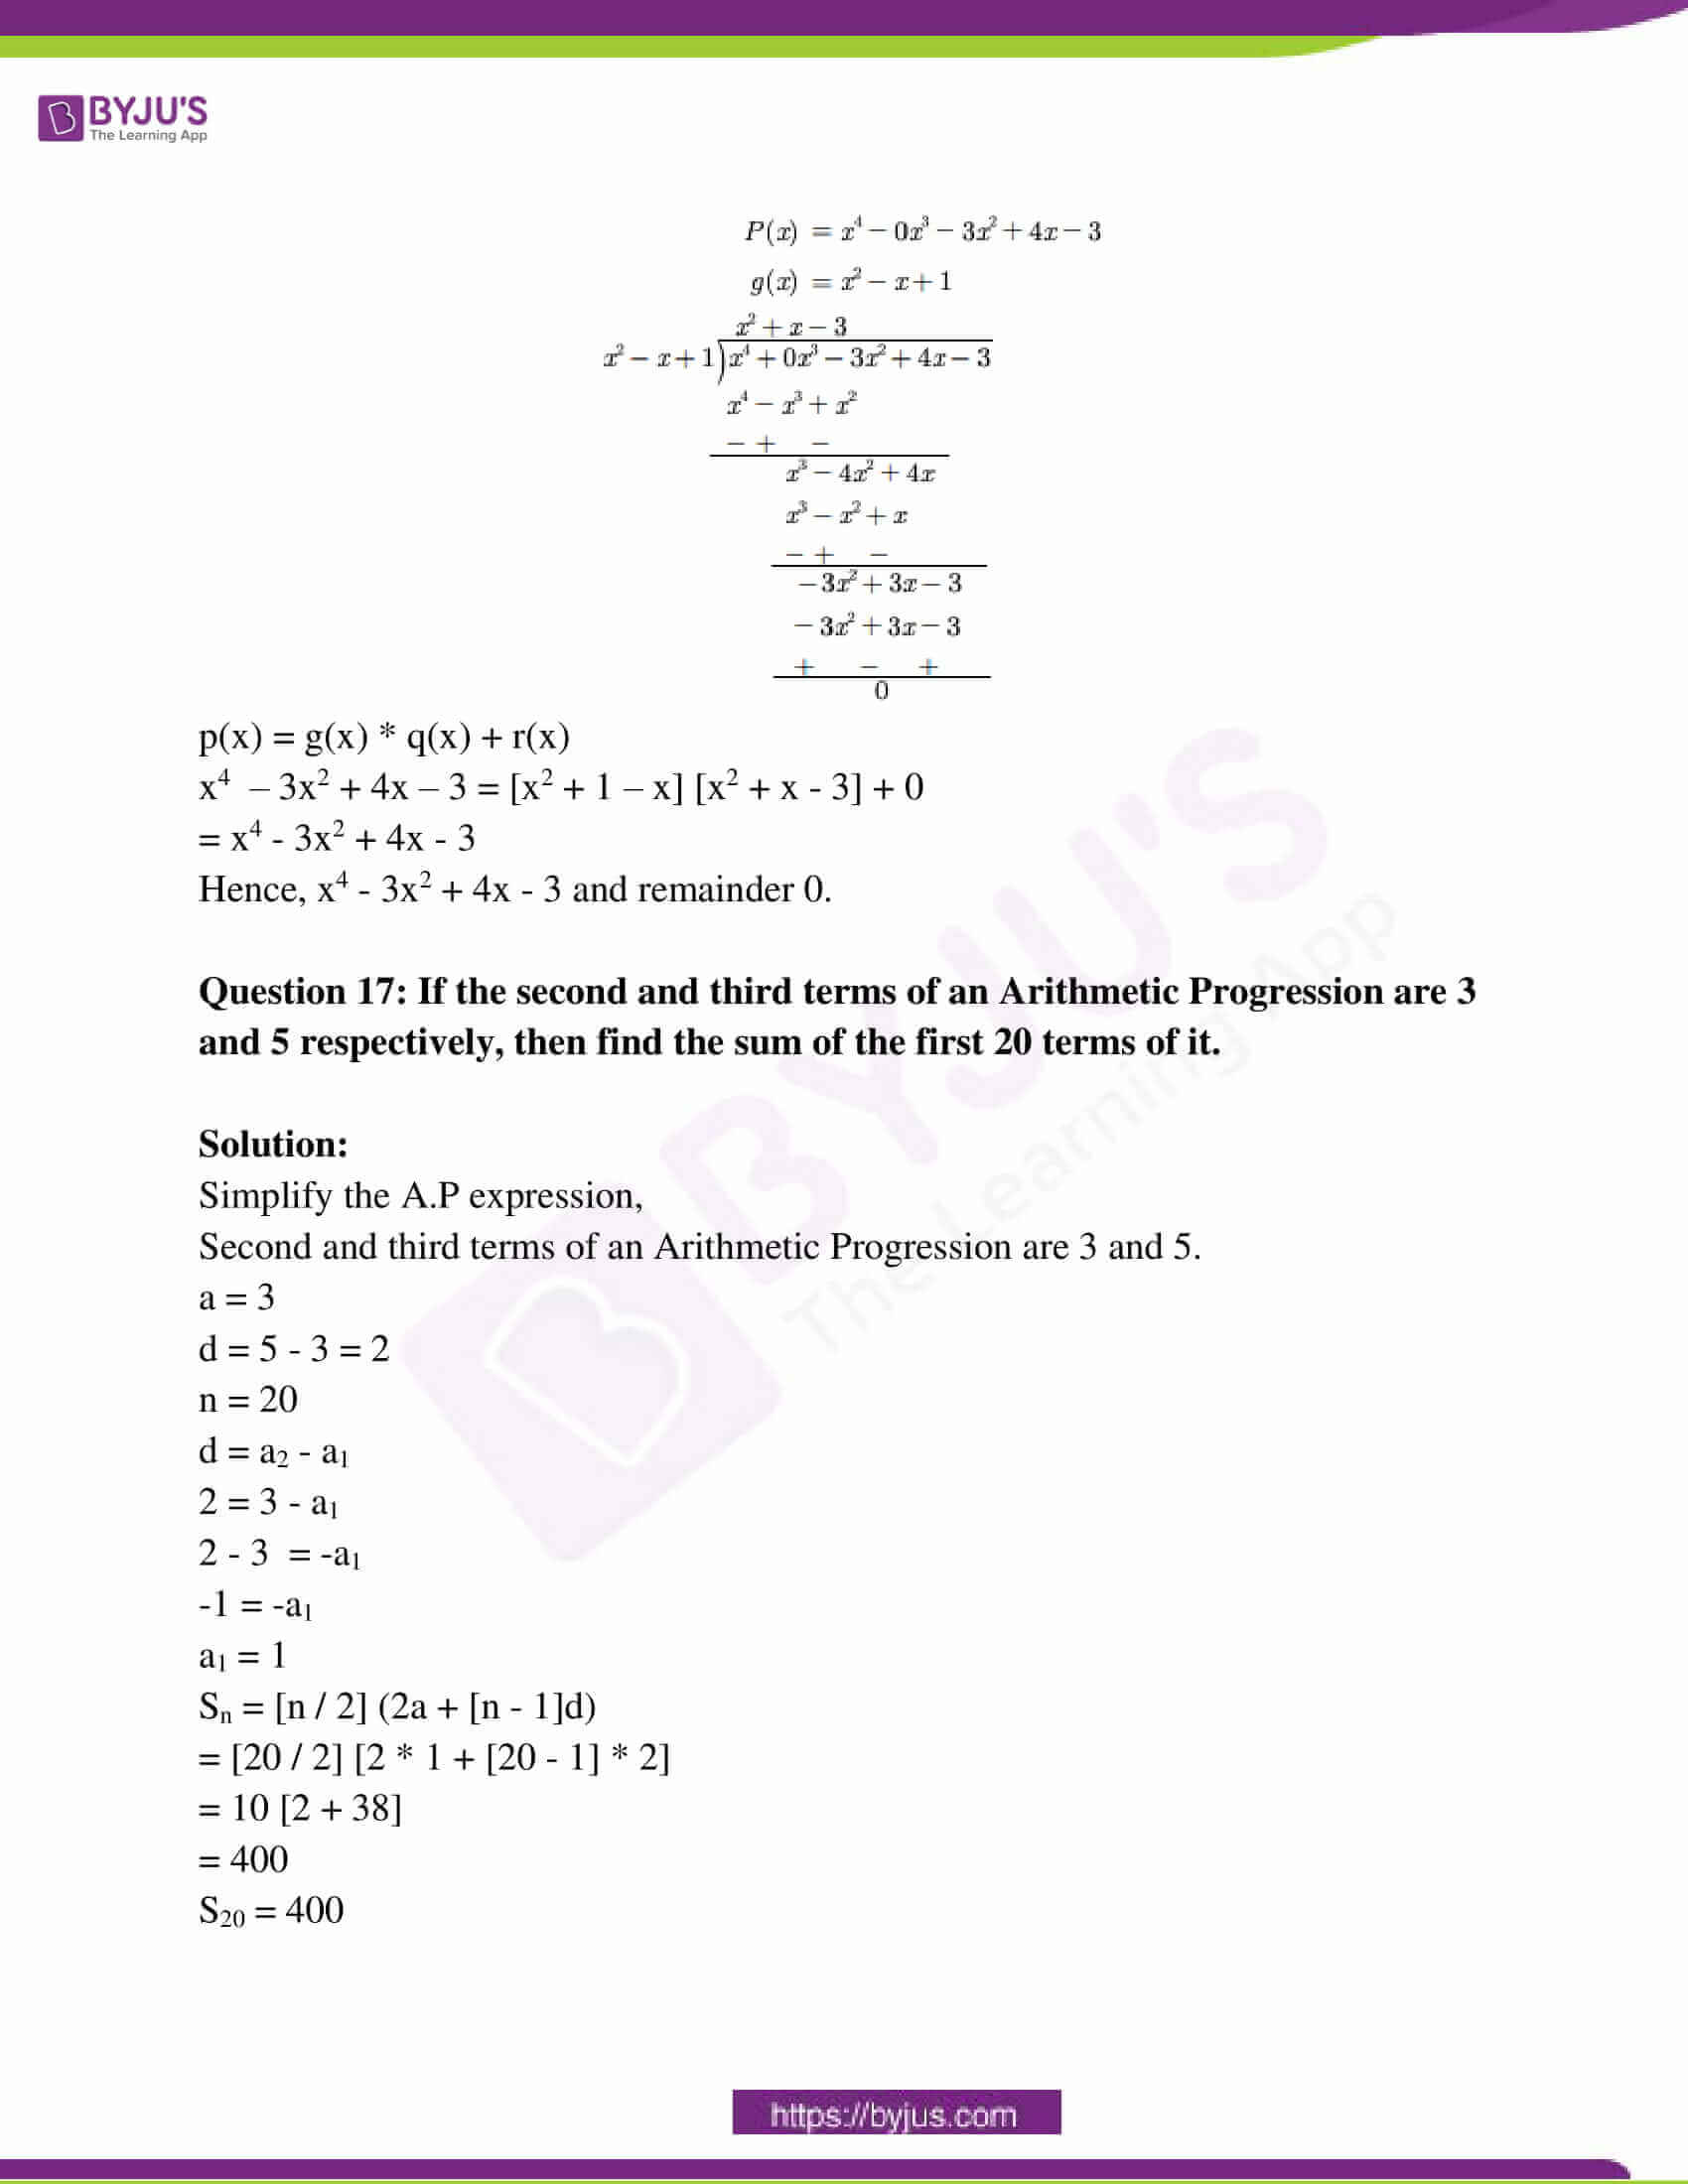 rajasthan board class 10 examination question paper sol march 2018 08